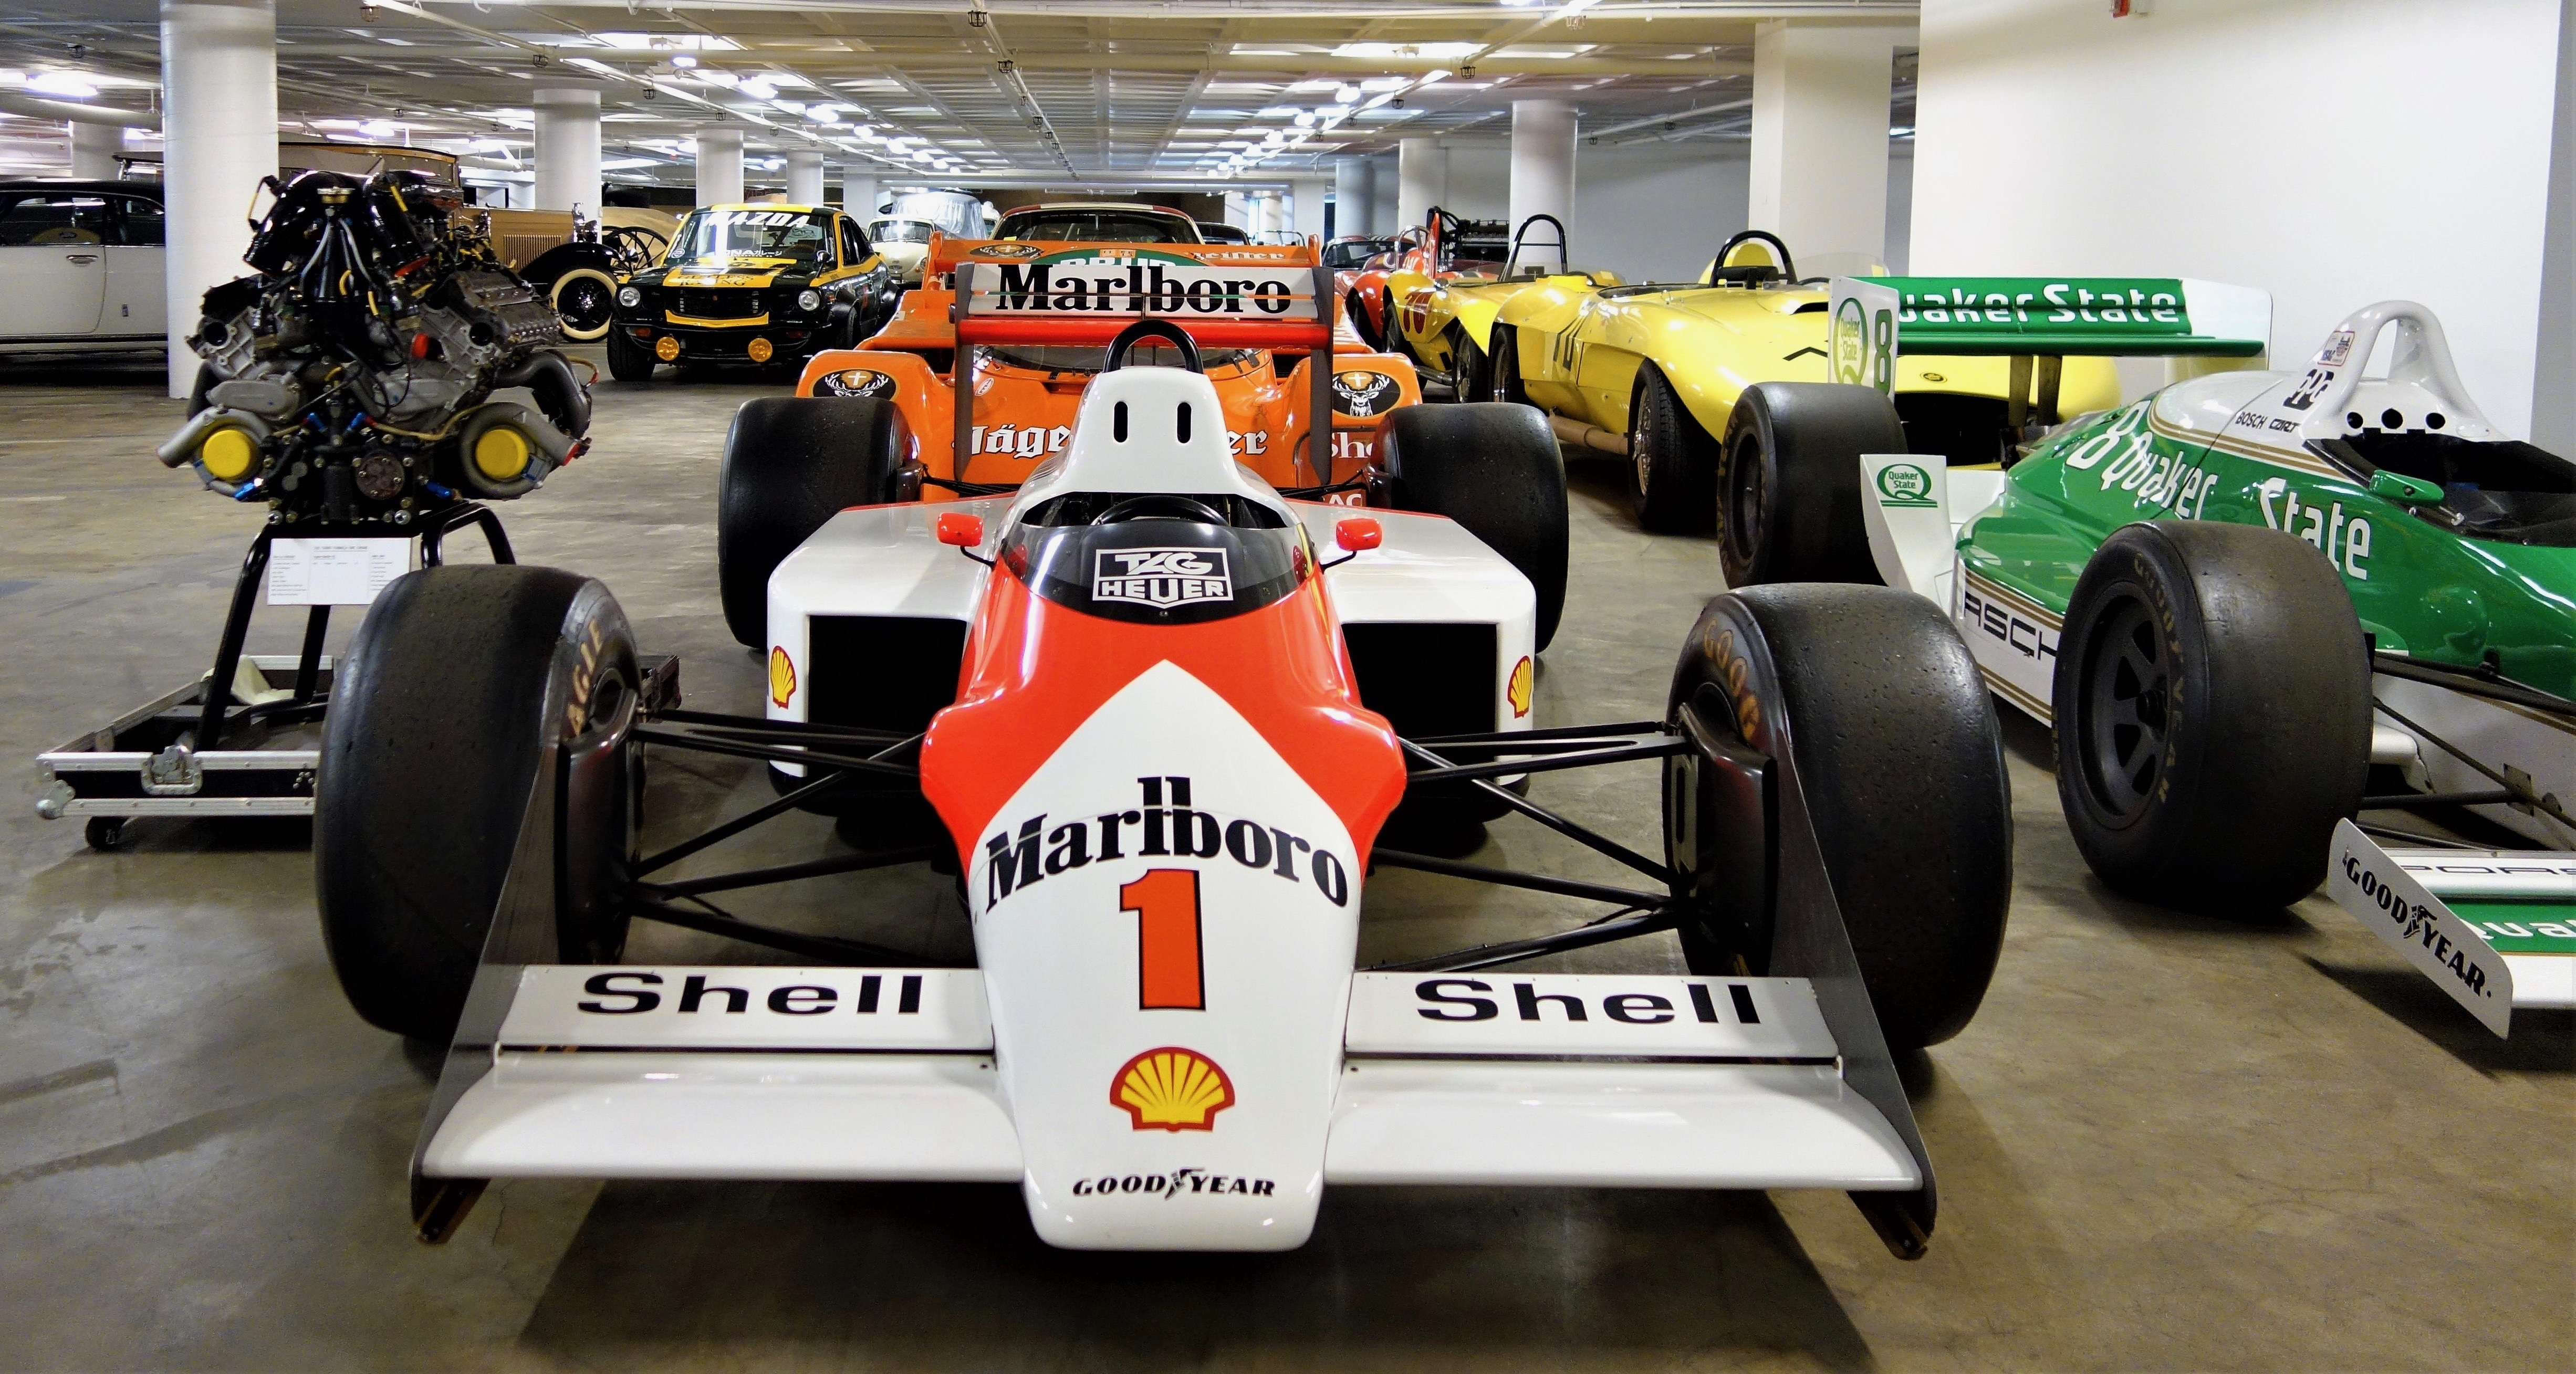 Peterson Vault, Hagerty helps Petersen to expand tours of its Vault, ClassicCars.com Journal